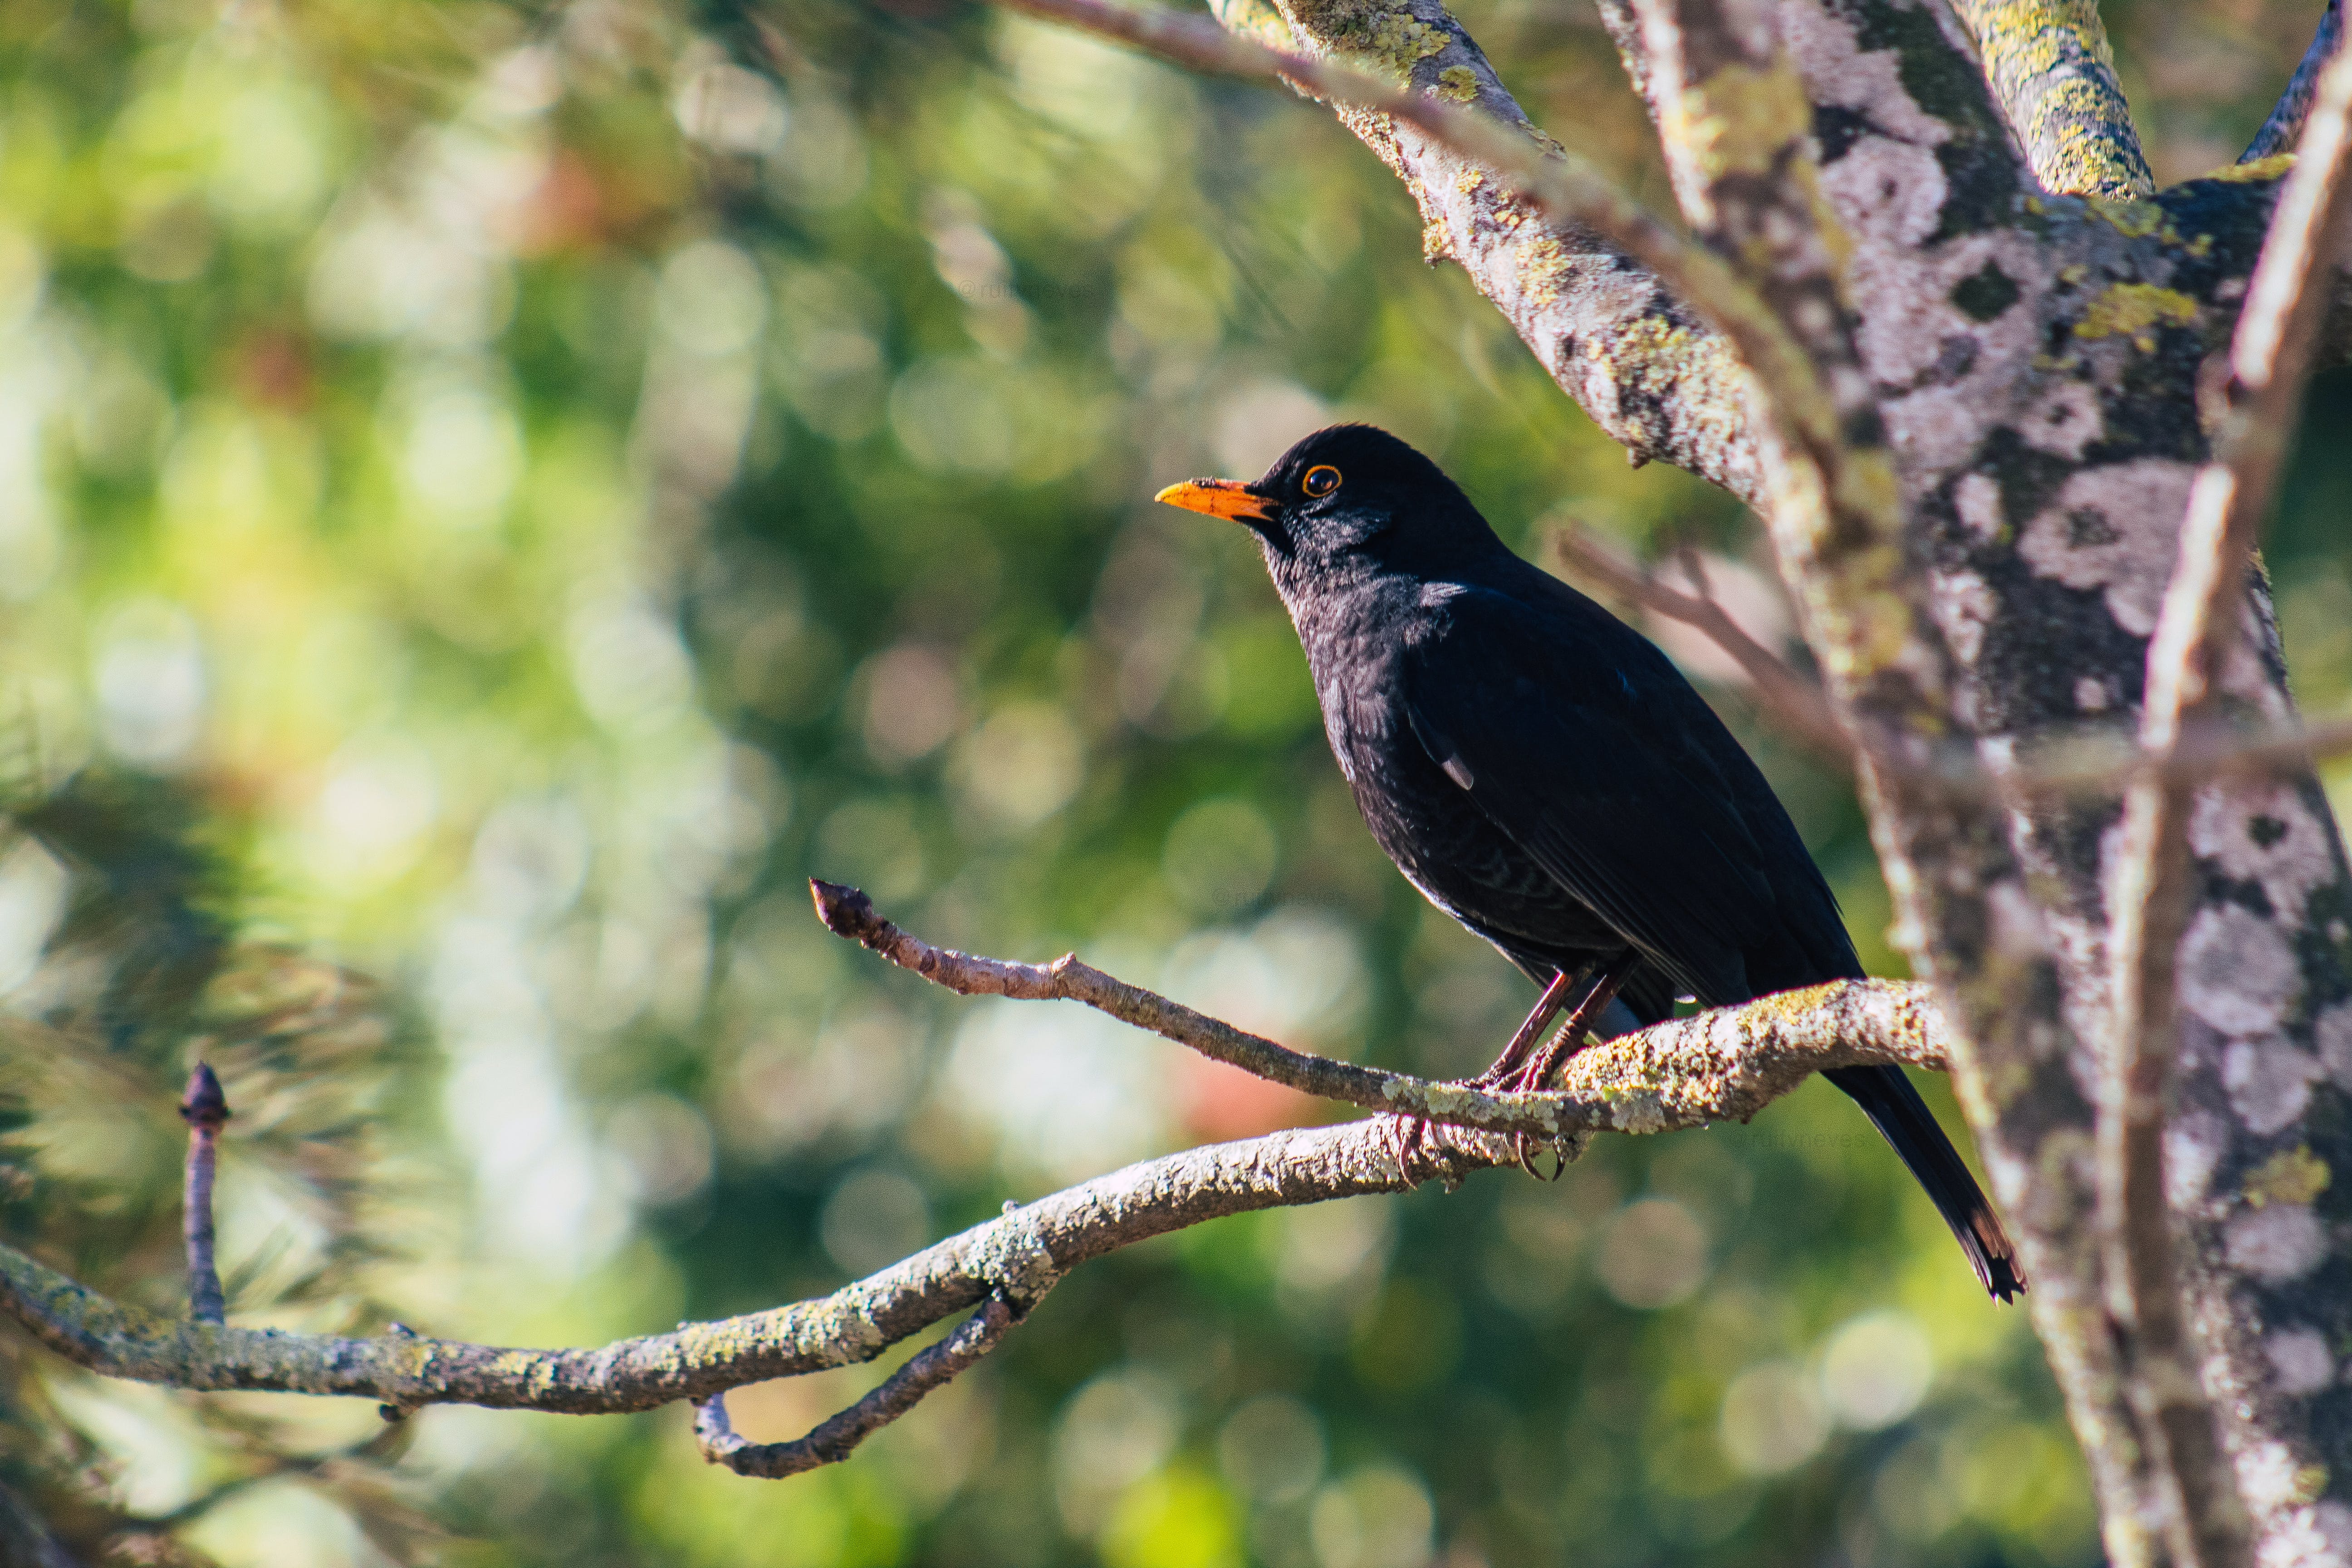 Close-up Photo of Black Bird Perched on Branch